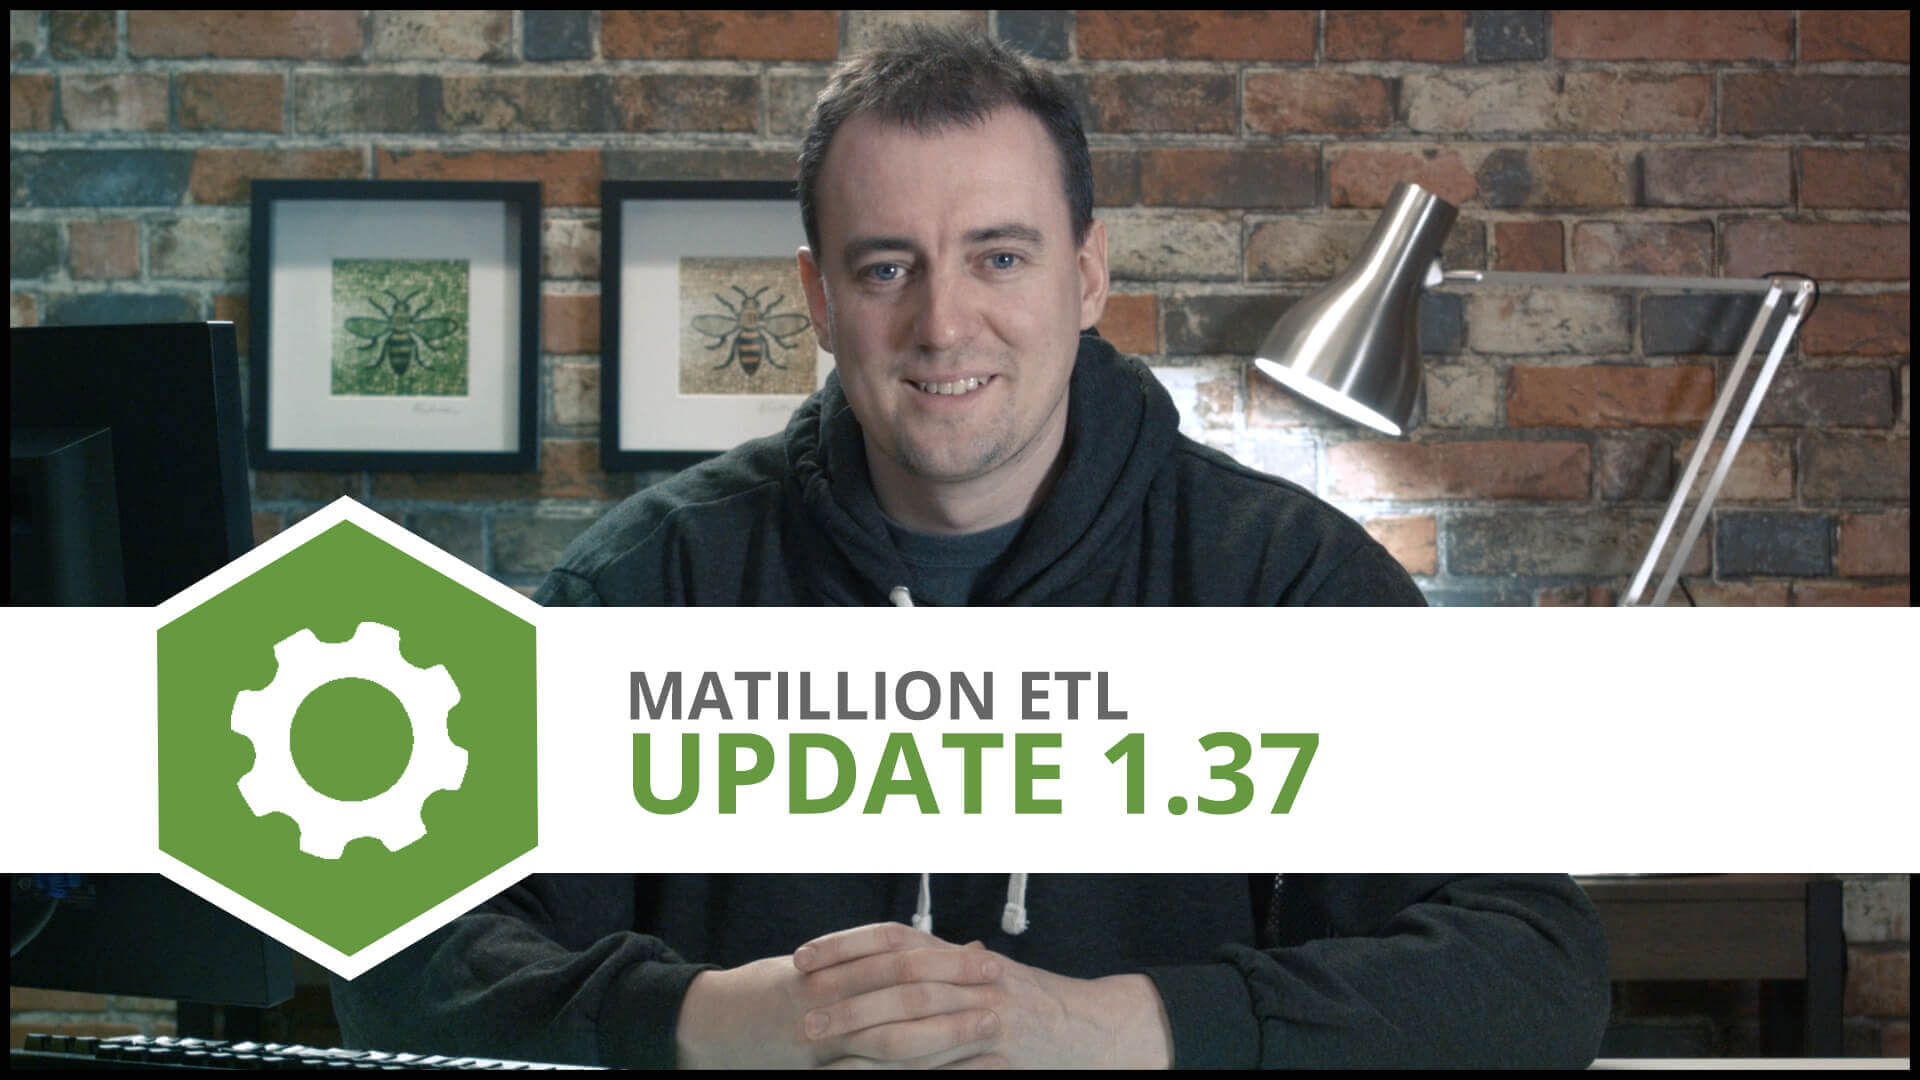 Update 1.37 | Matillion ETL